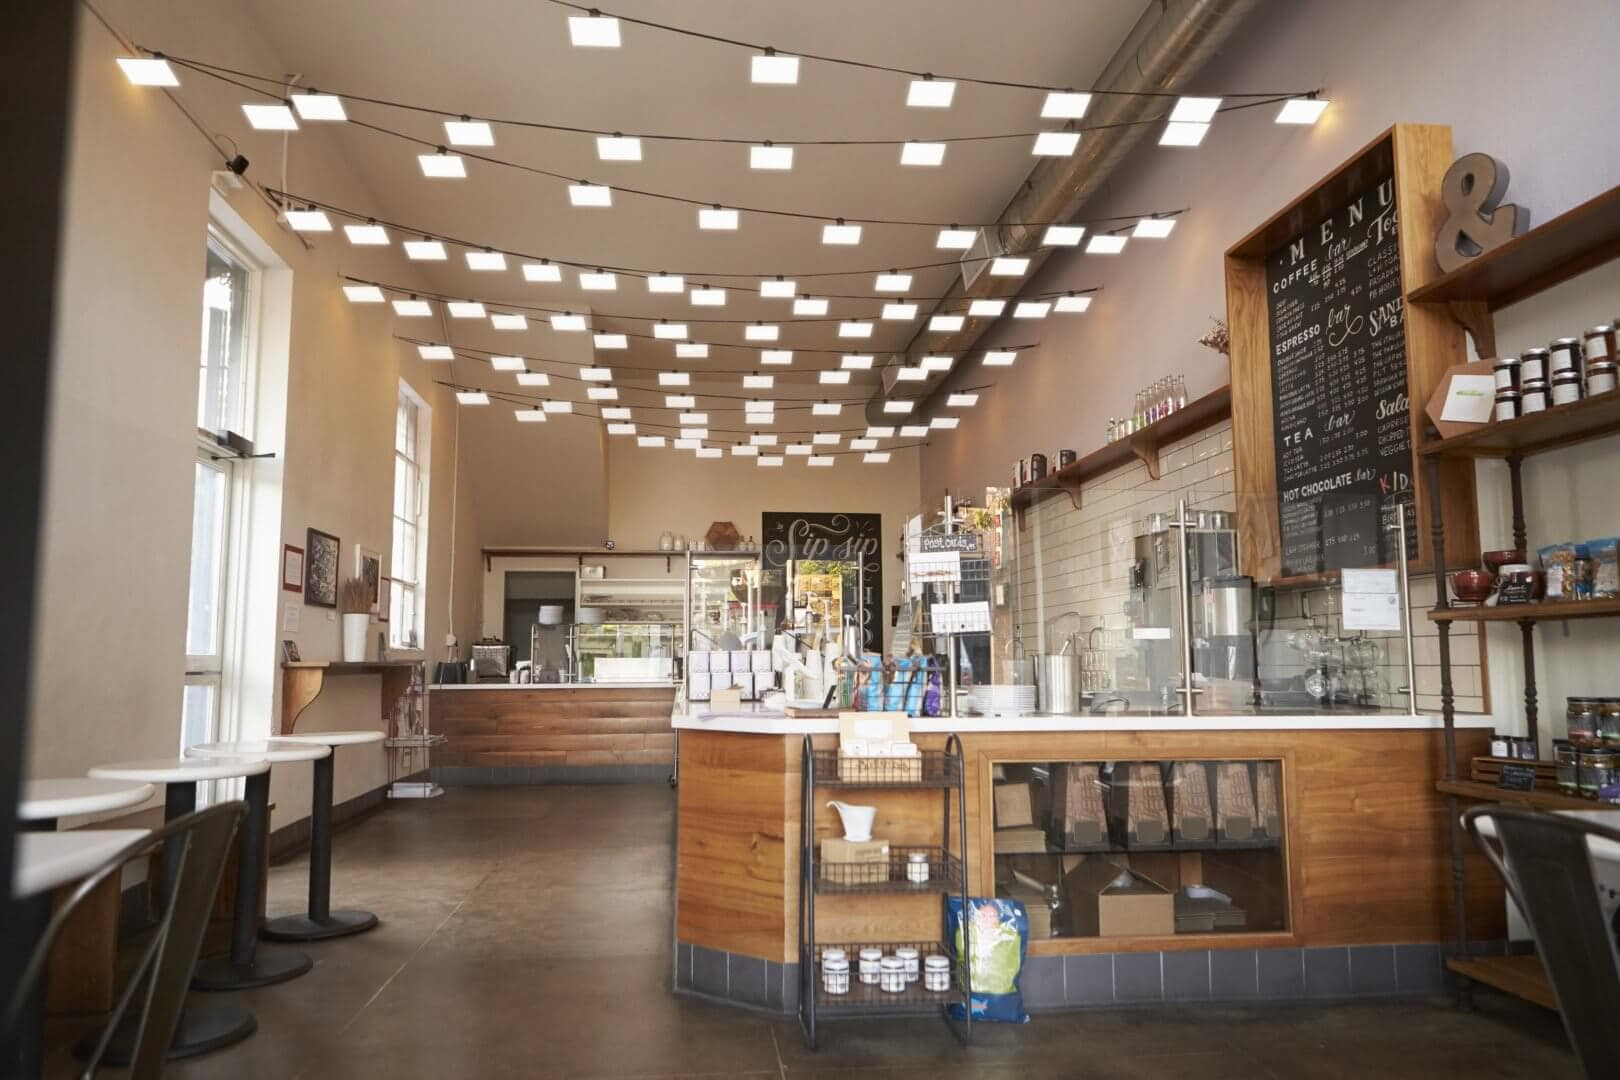 Cafe with OLED lighting panels